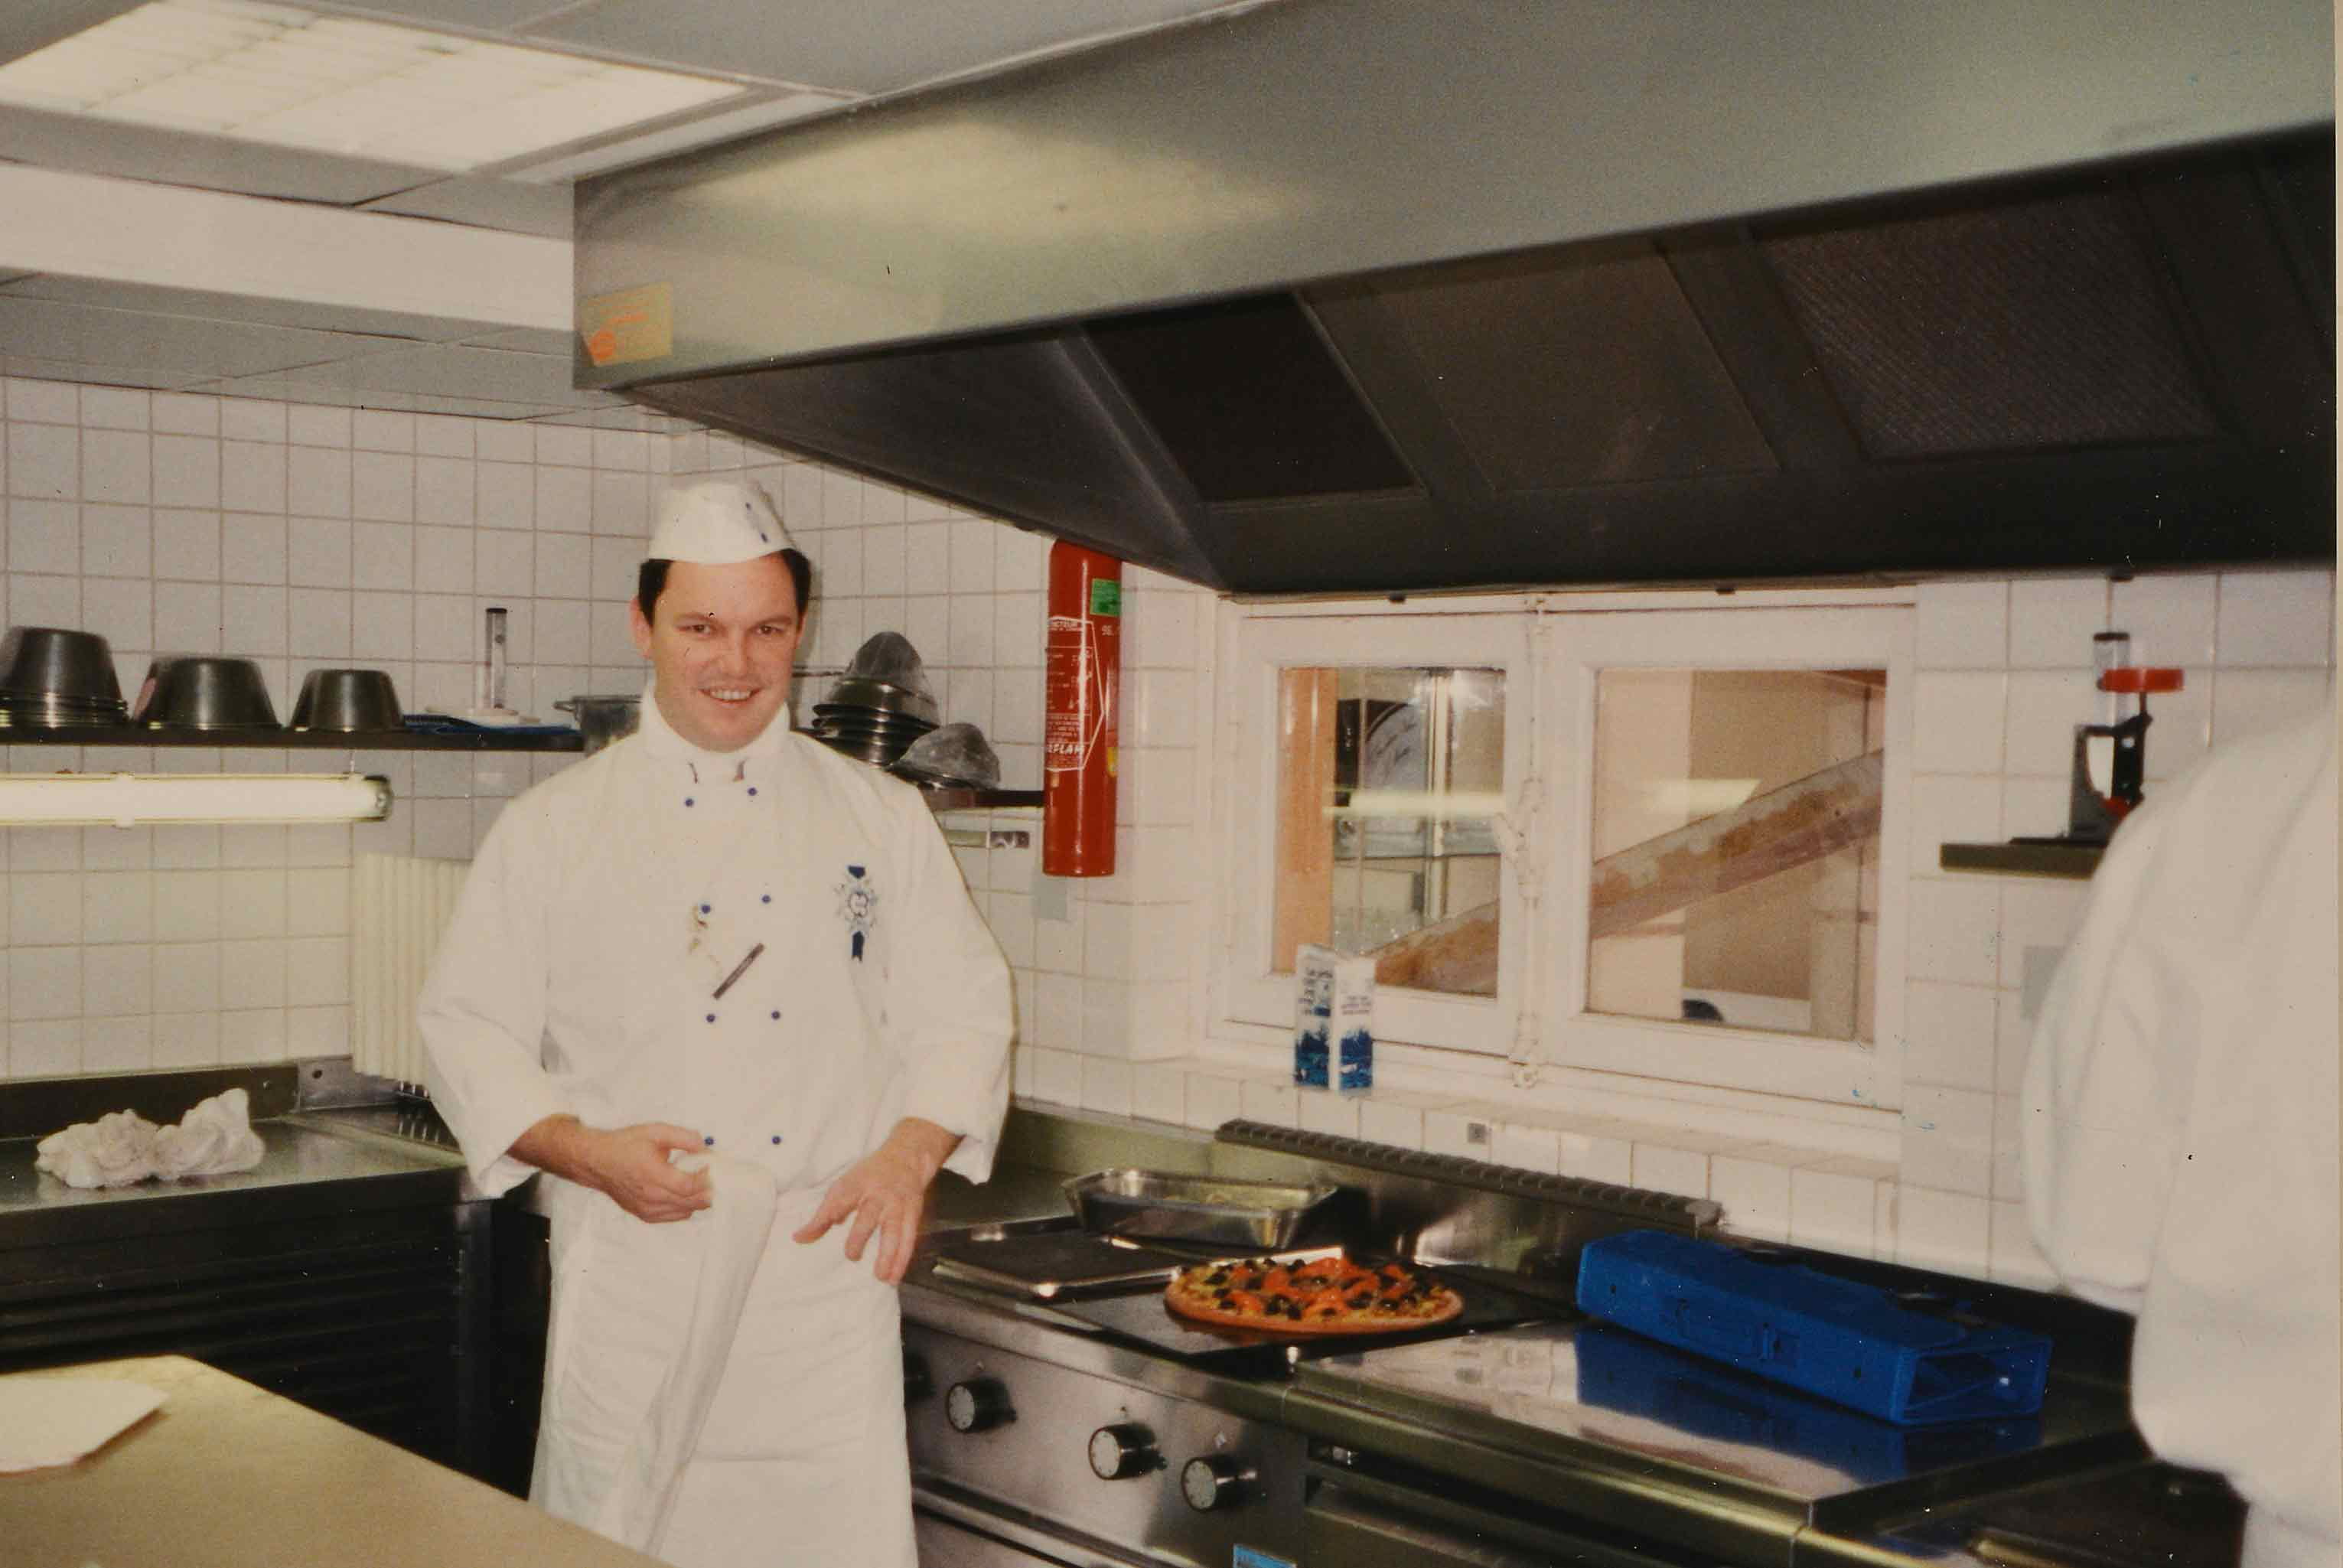 Dr Rod as chef in kitchen